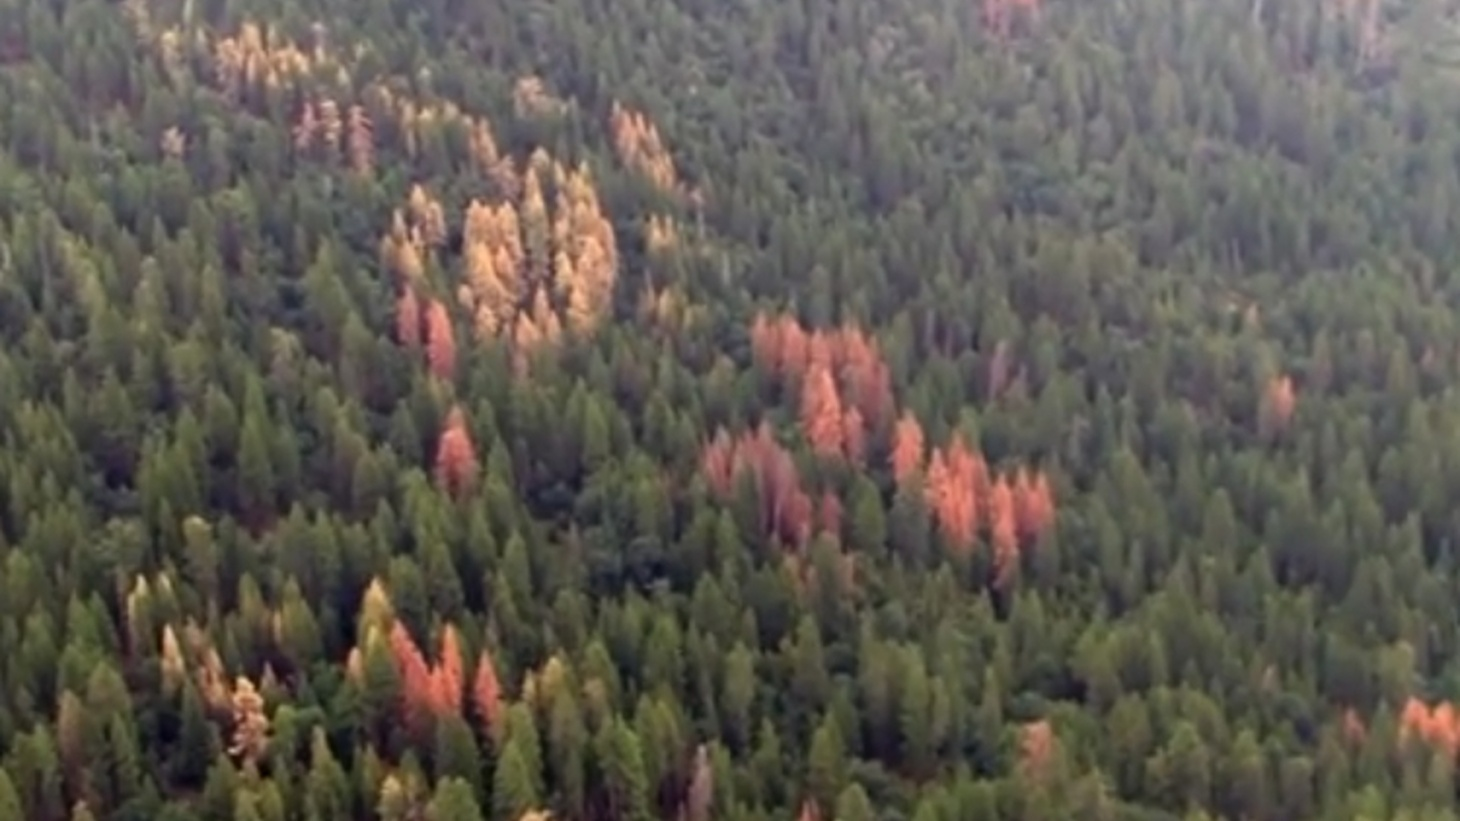 Drought has turned local forests into a massive tinderbox of dead trees, and the predicted El Niño is unlikely to bring them back to life. We hear about a high-tech aerial investigation that's turned up new challenges for fire control, erosion and water quality.